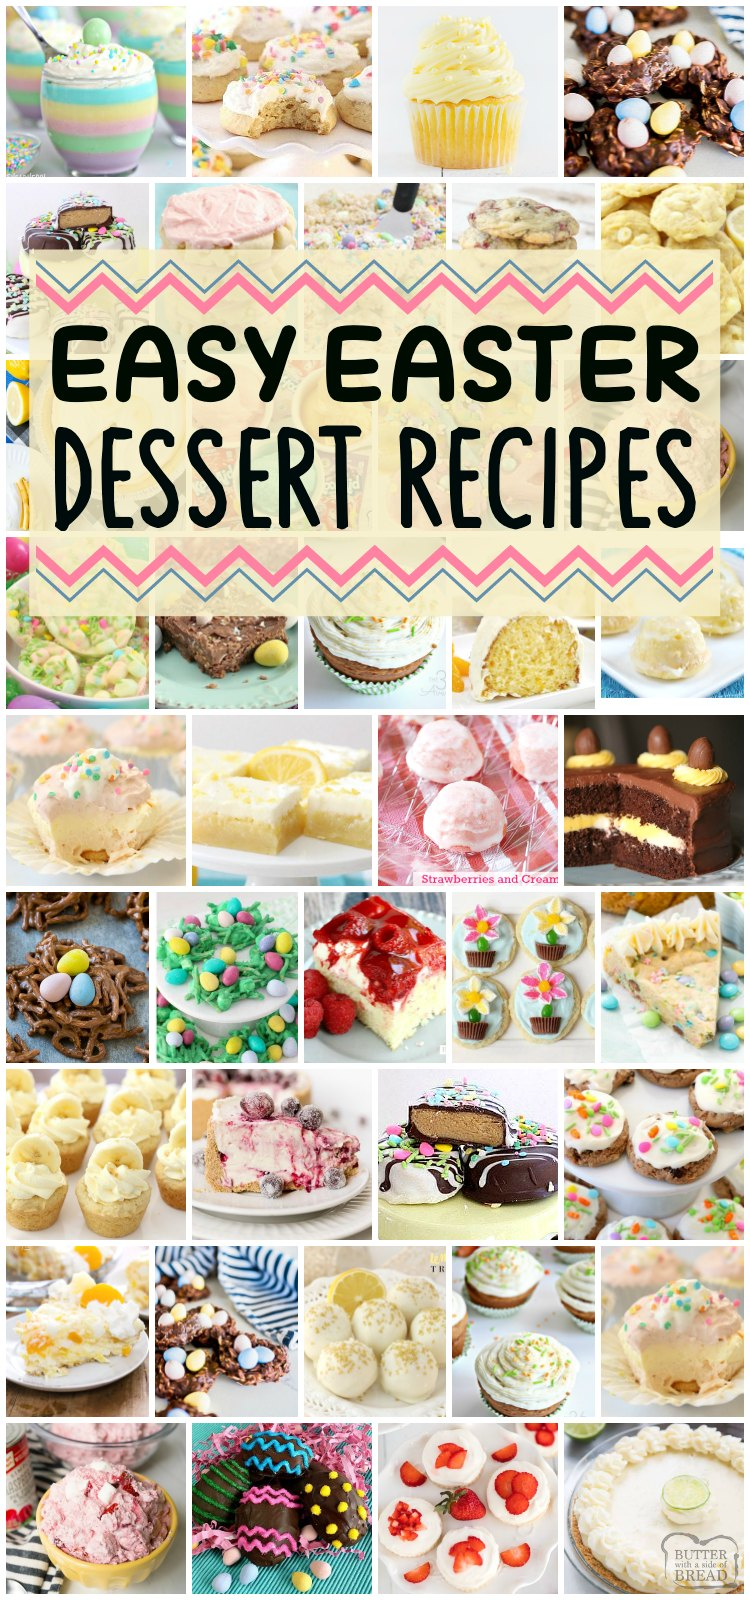 Easy Easter Desserts that everyone will enjoy! All these favorite Easter recipes, from the Peanut Butter Easter Eggs to the Little Lemon Drops, are some of our favorite treats for this special holiday! #easterrecipe #easterrecipe